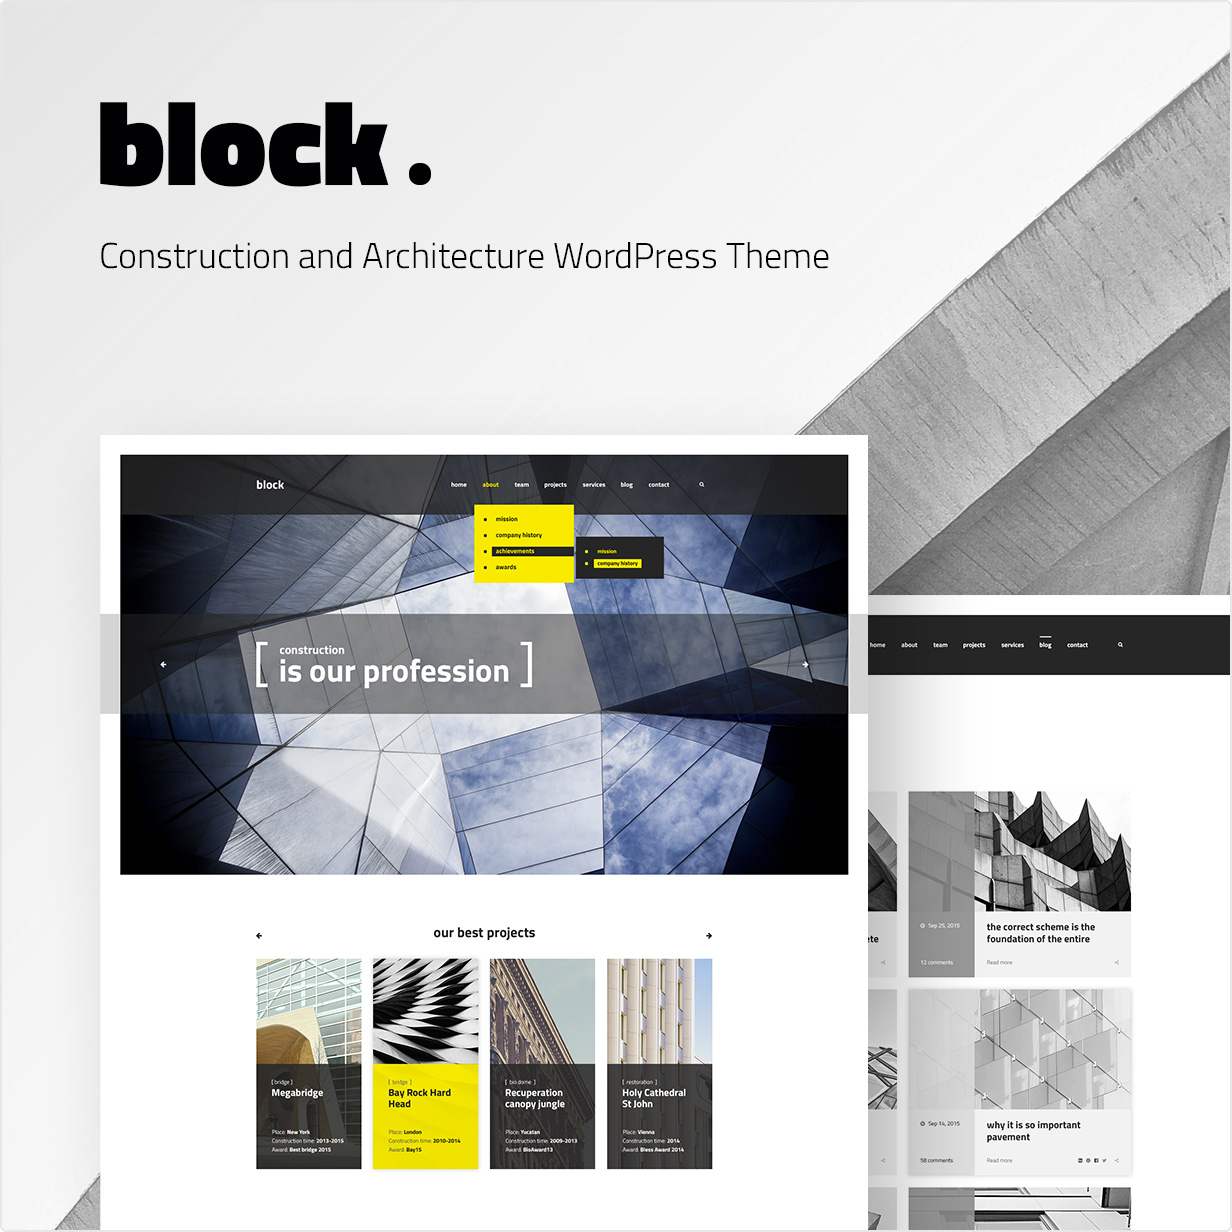 Construction and Architecture WordPress Theme Block